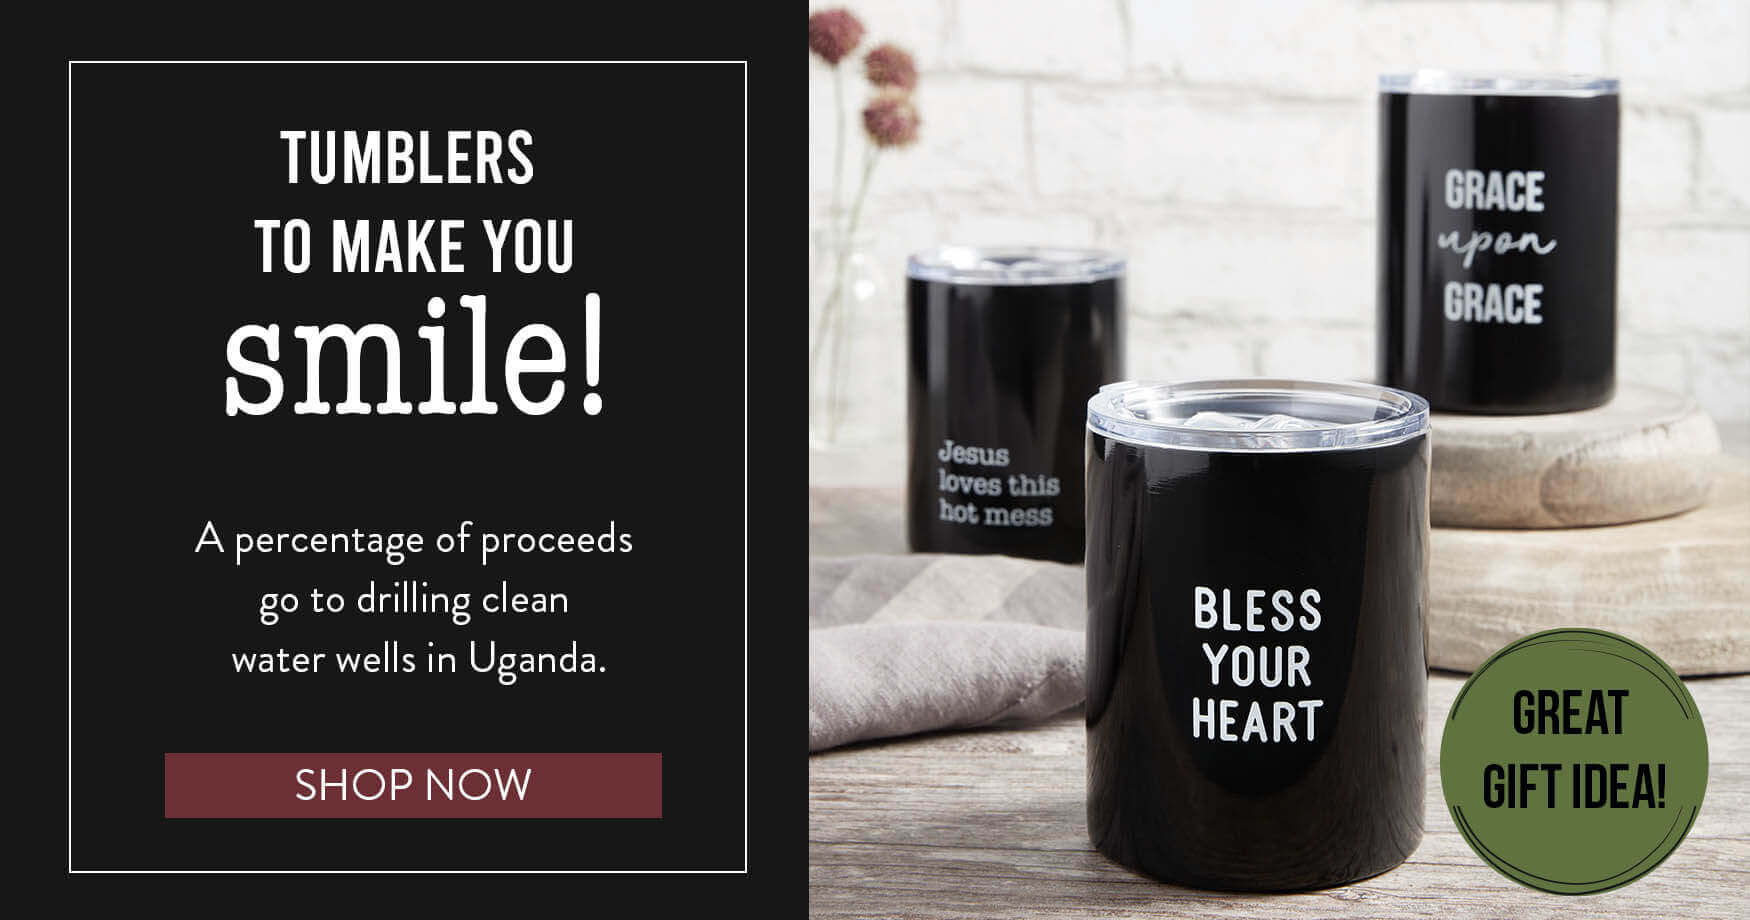 Tumblers to make you smile! - A percentage of proceeds go to drilling clean water wells in Uganda.